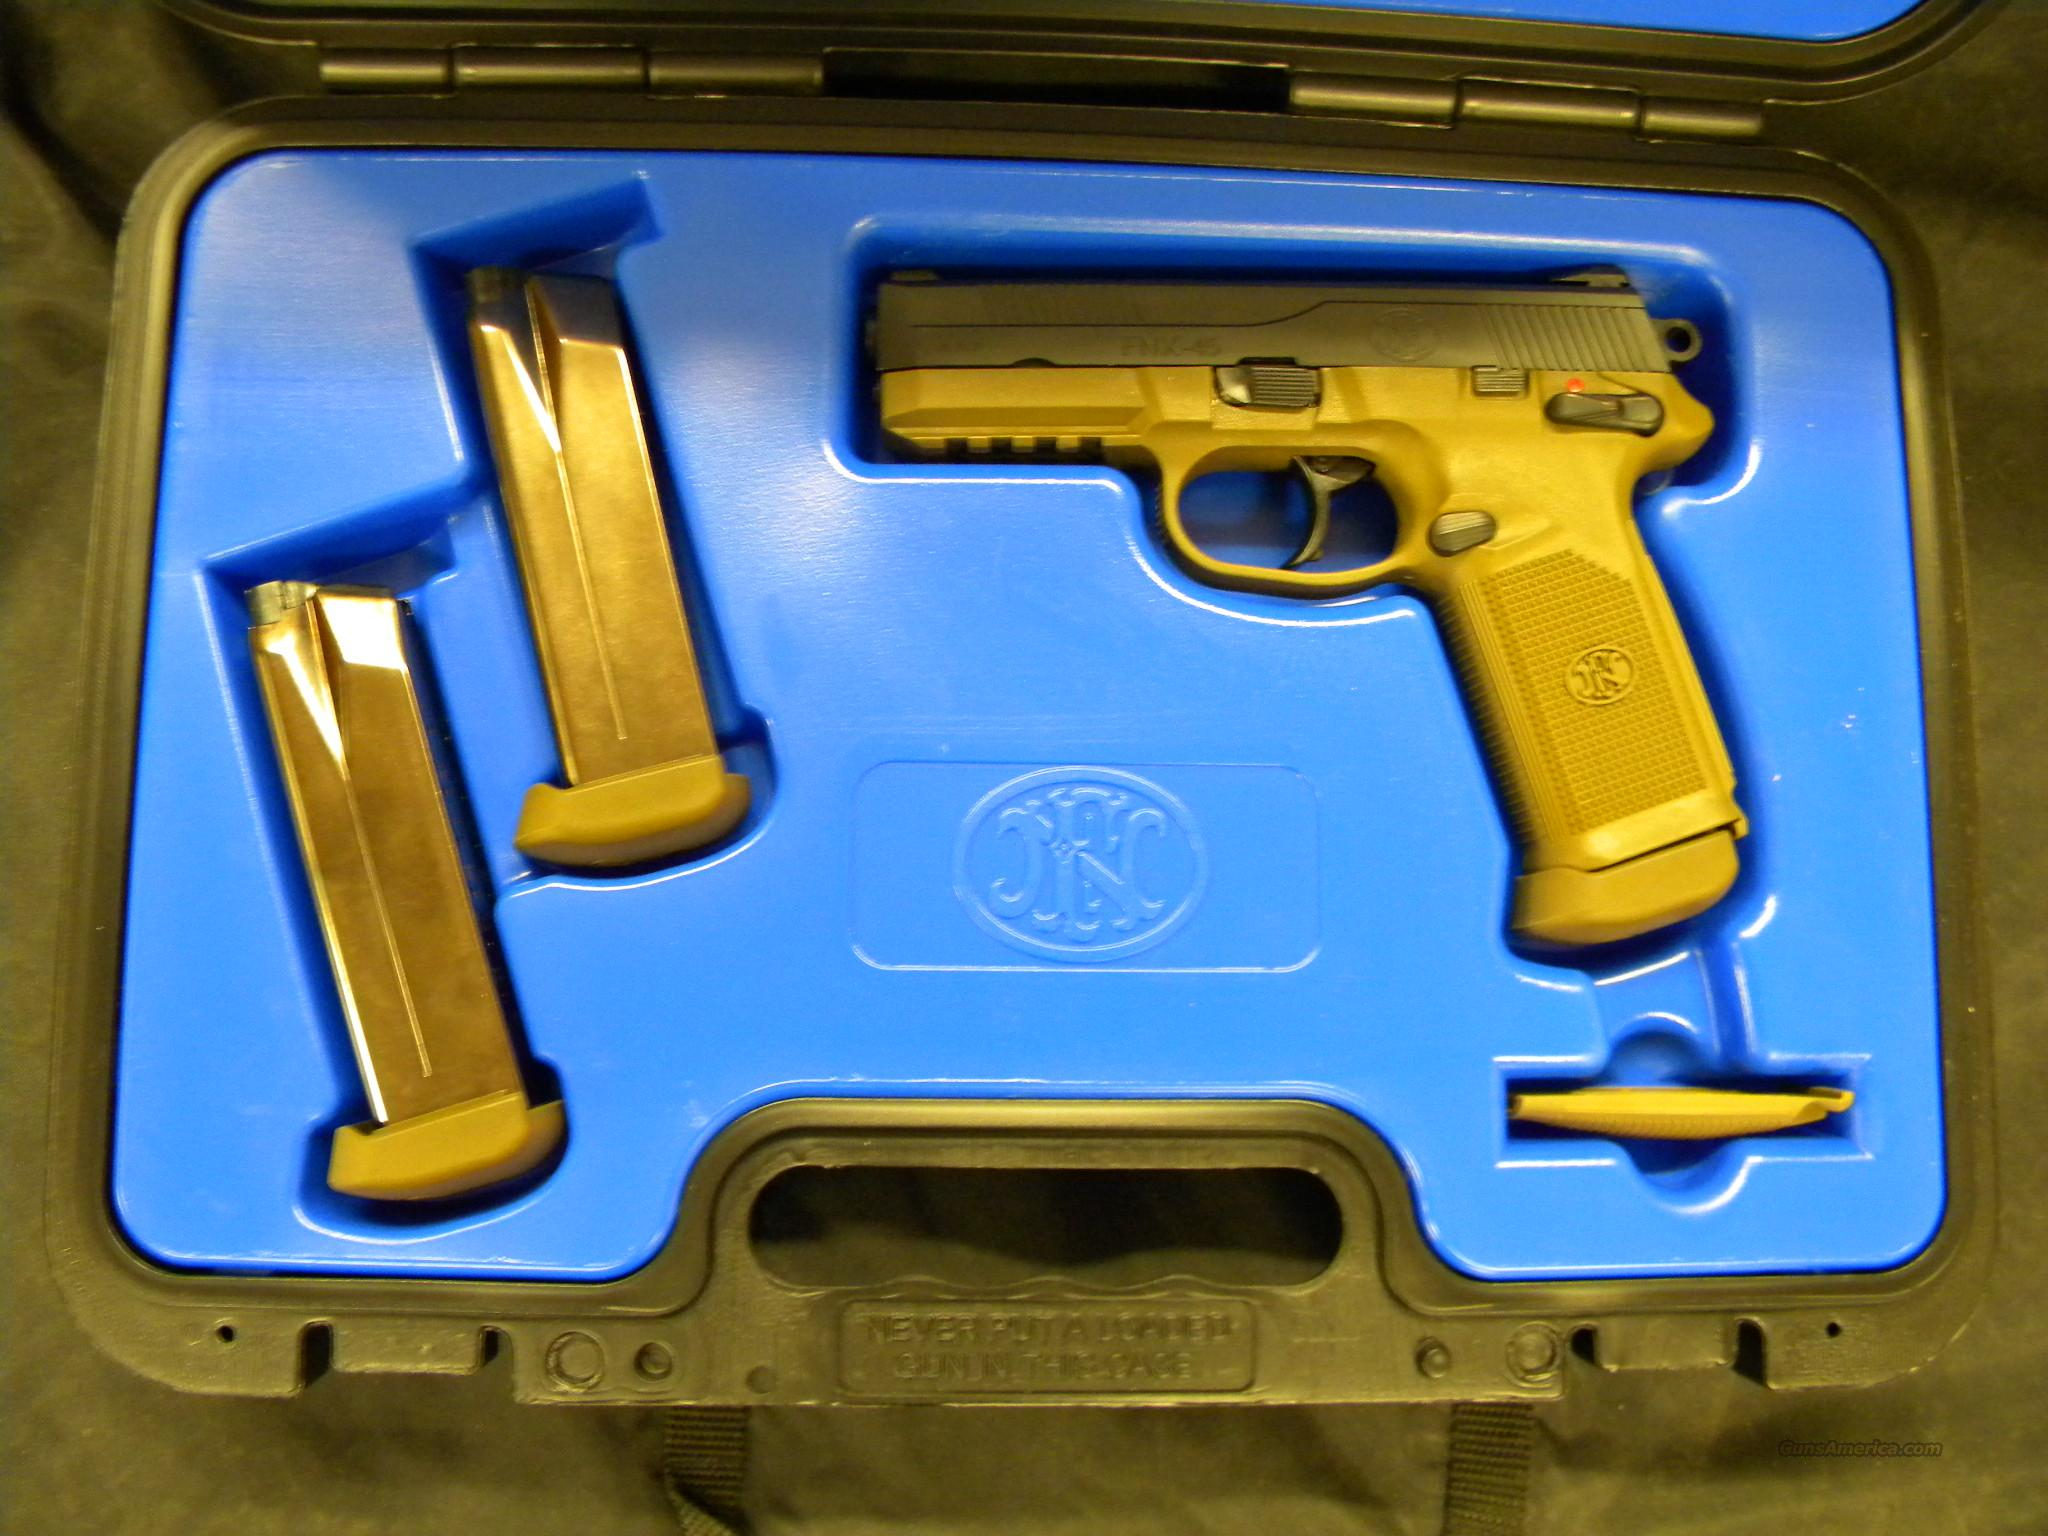 FNH FNX-45 .45ACP FDE  Guns > Pistols > FNH - Fabrique Nationale (FN) Pistols > High Power Type